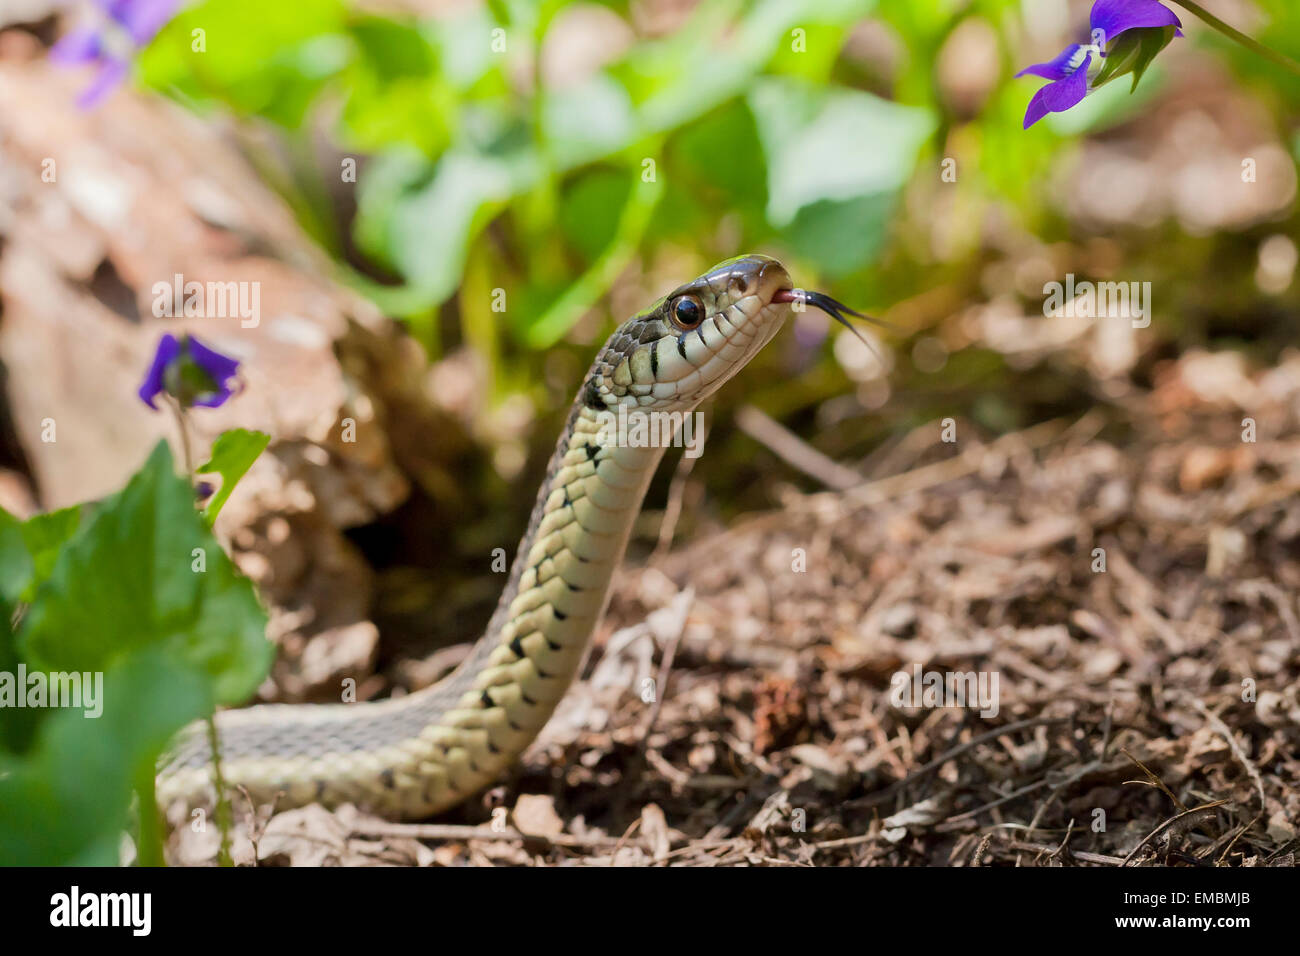 Common garter snake (Thamnophis sirtalis) - Virginia USA - Stock Image